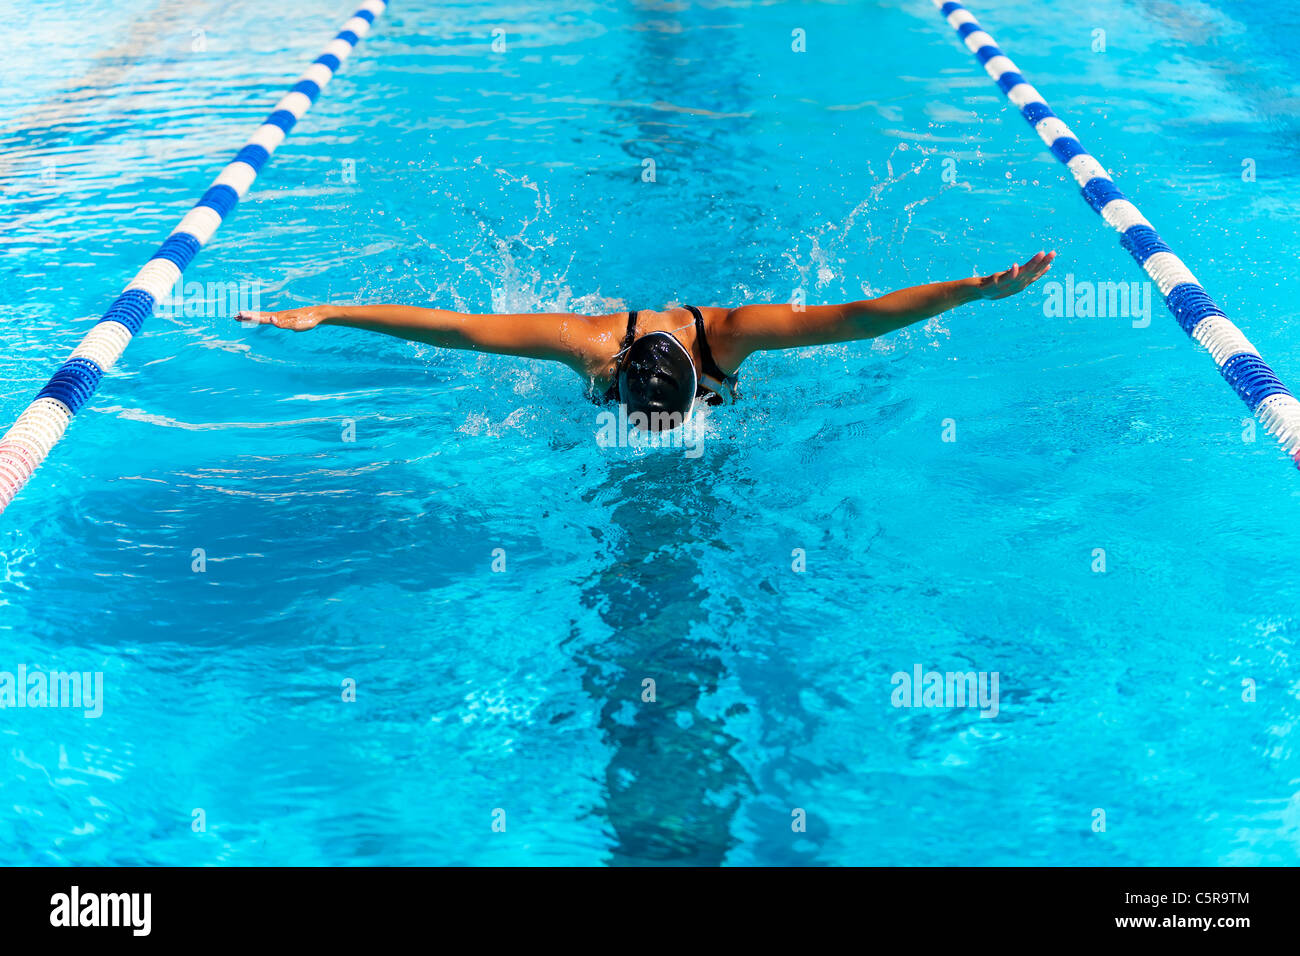 A swimmer does the Butterfly. - Stock Image